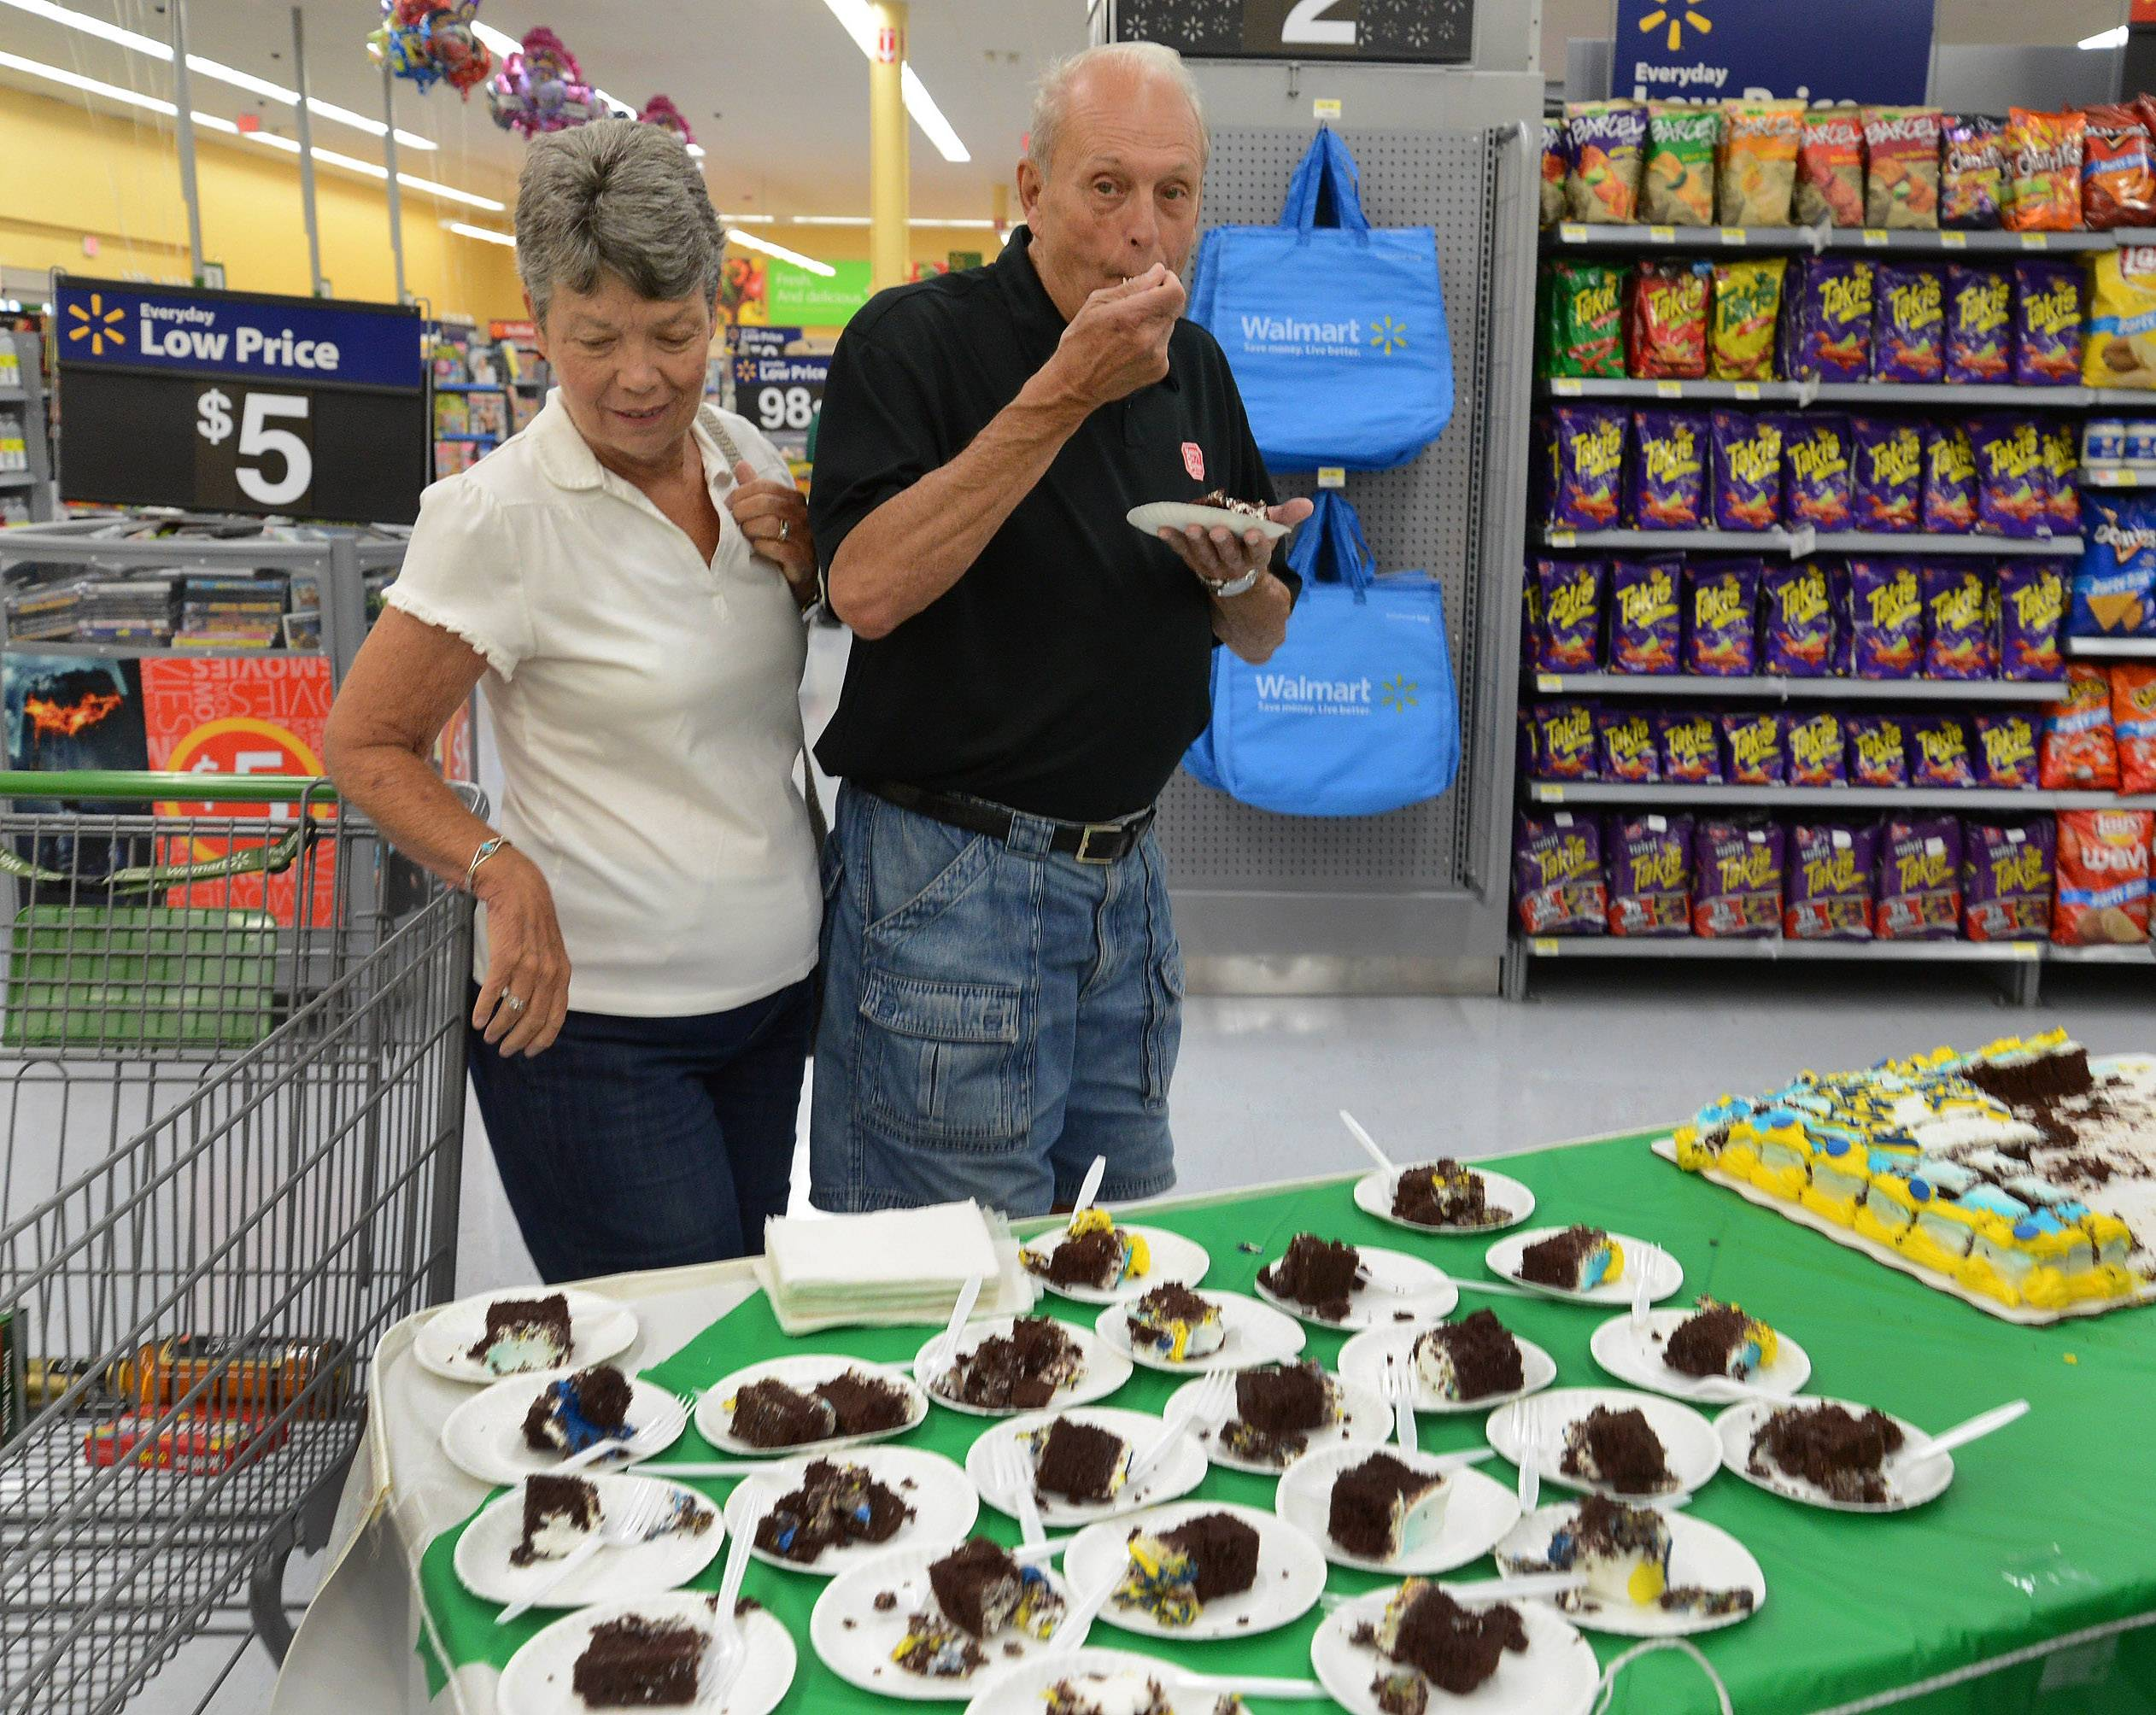 Judy and Carlton Hibbert of Des Plaines sample cake provided by the Dr Pepper Snapple Group during the grand opening of the Walmart Neighborhood Market in Des Plaines.